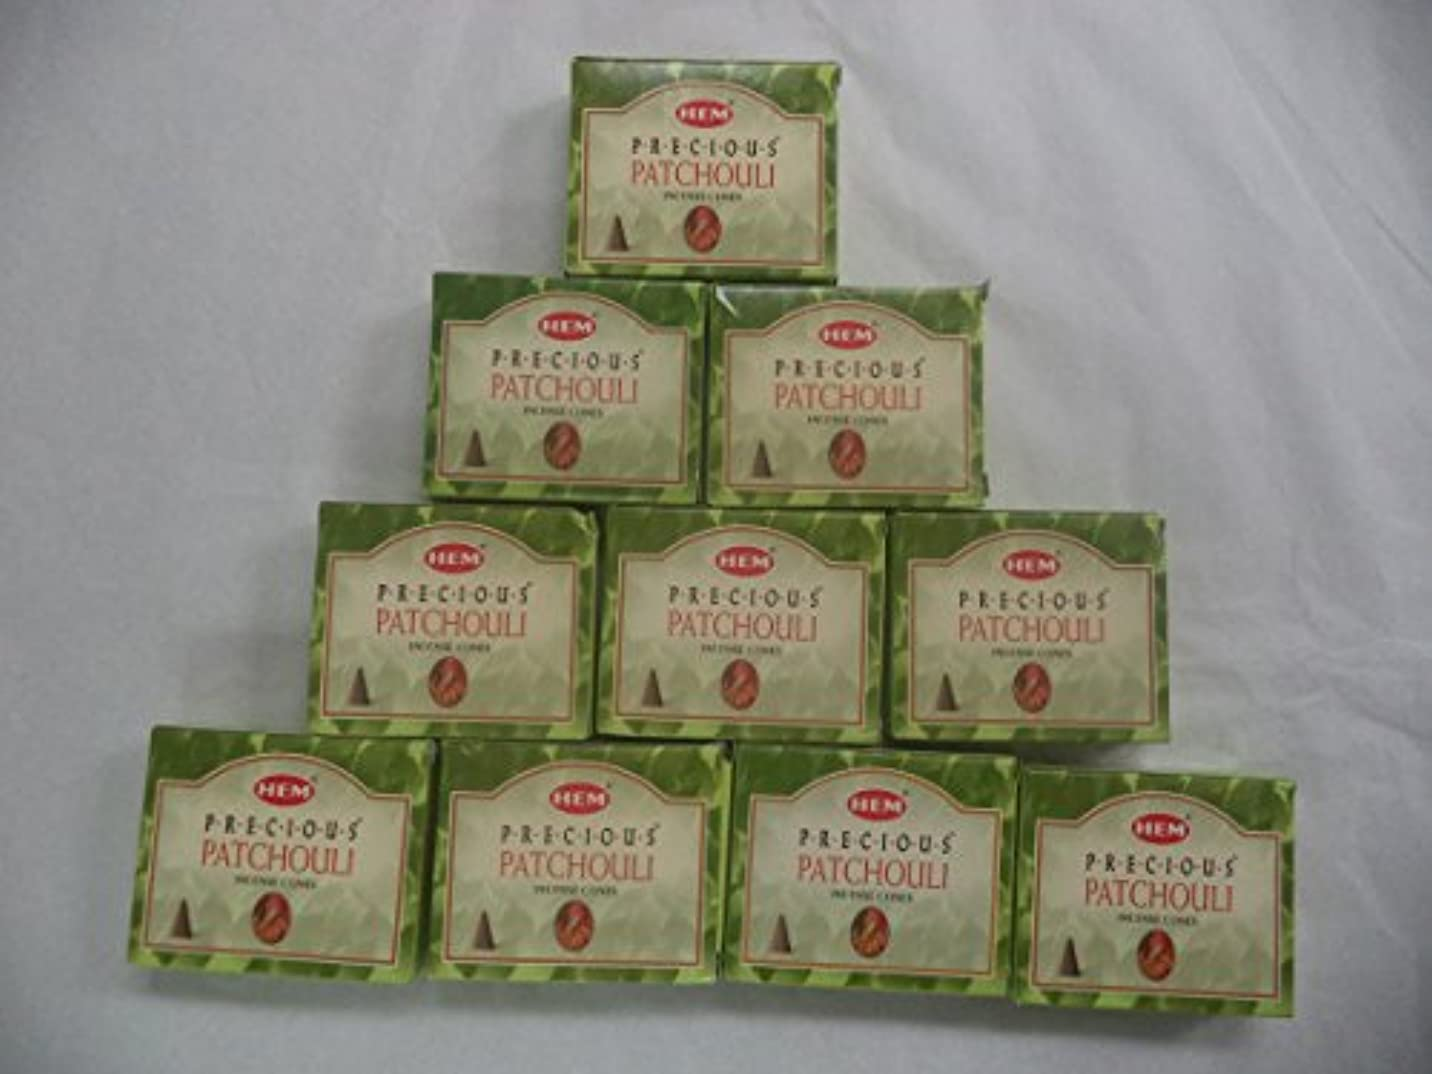 勇敢な審判ペダルHEM Incense Cones: Precious Patchouli - 10 Packs of 10 = 100 Cones by Hem